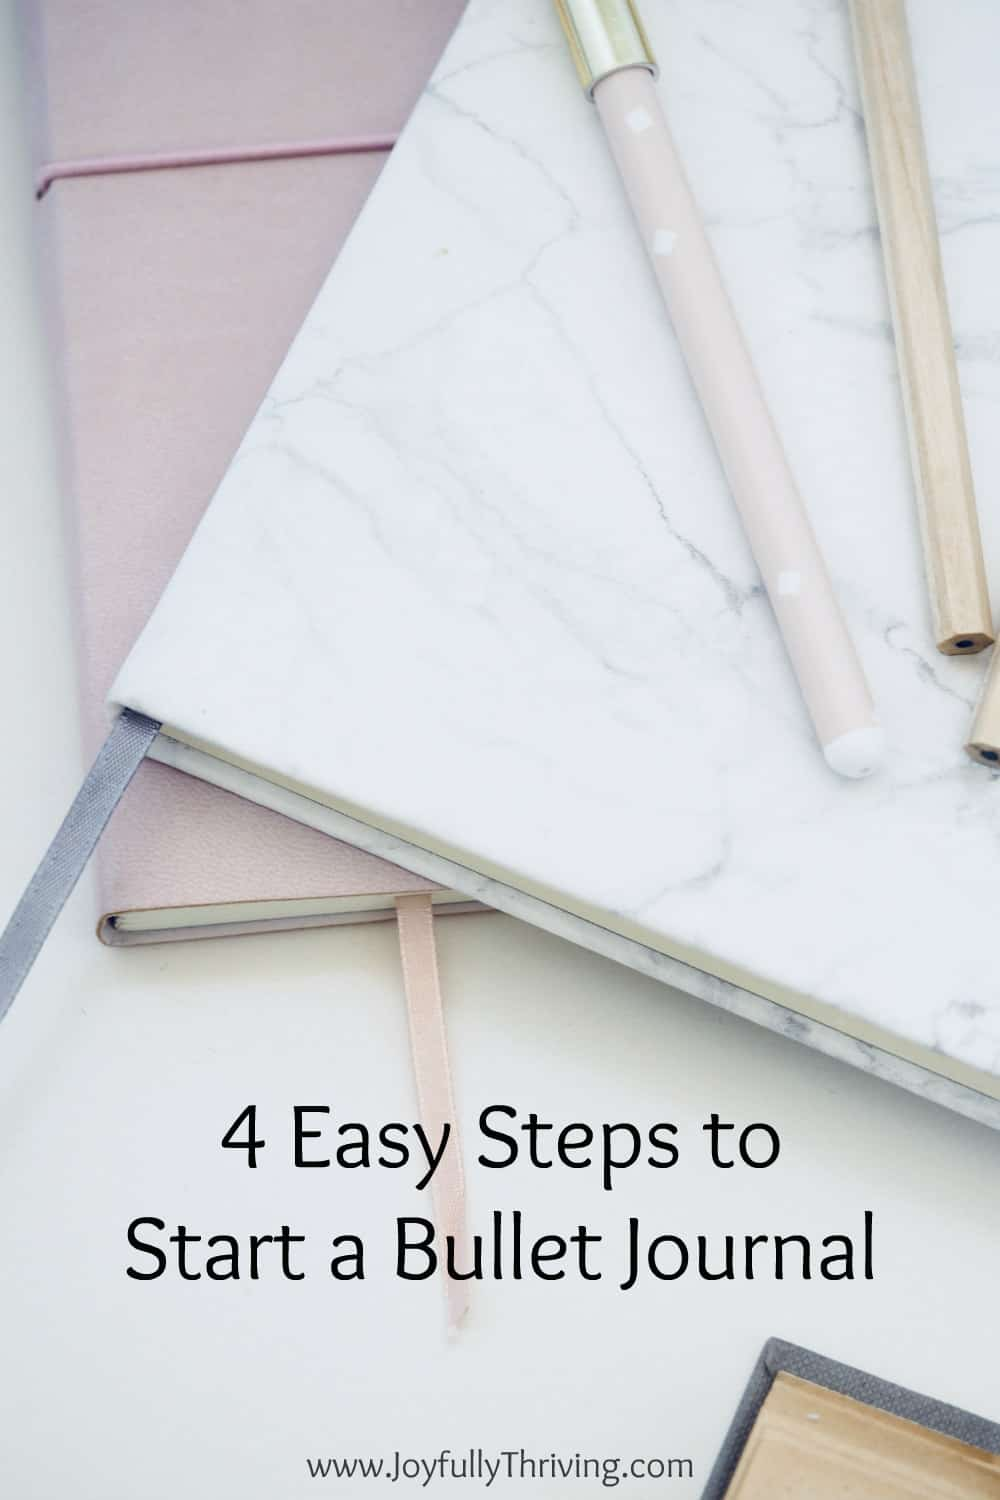 If you've been wanting to start a bullet journal, learn how you can do it today - in 4 easy steps! I love my bullet journal and this post was so helpful! #bulletjournal